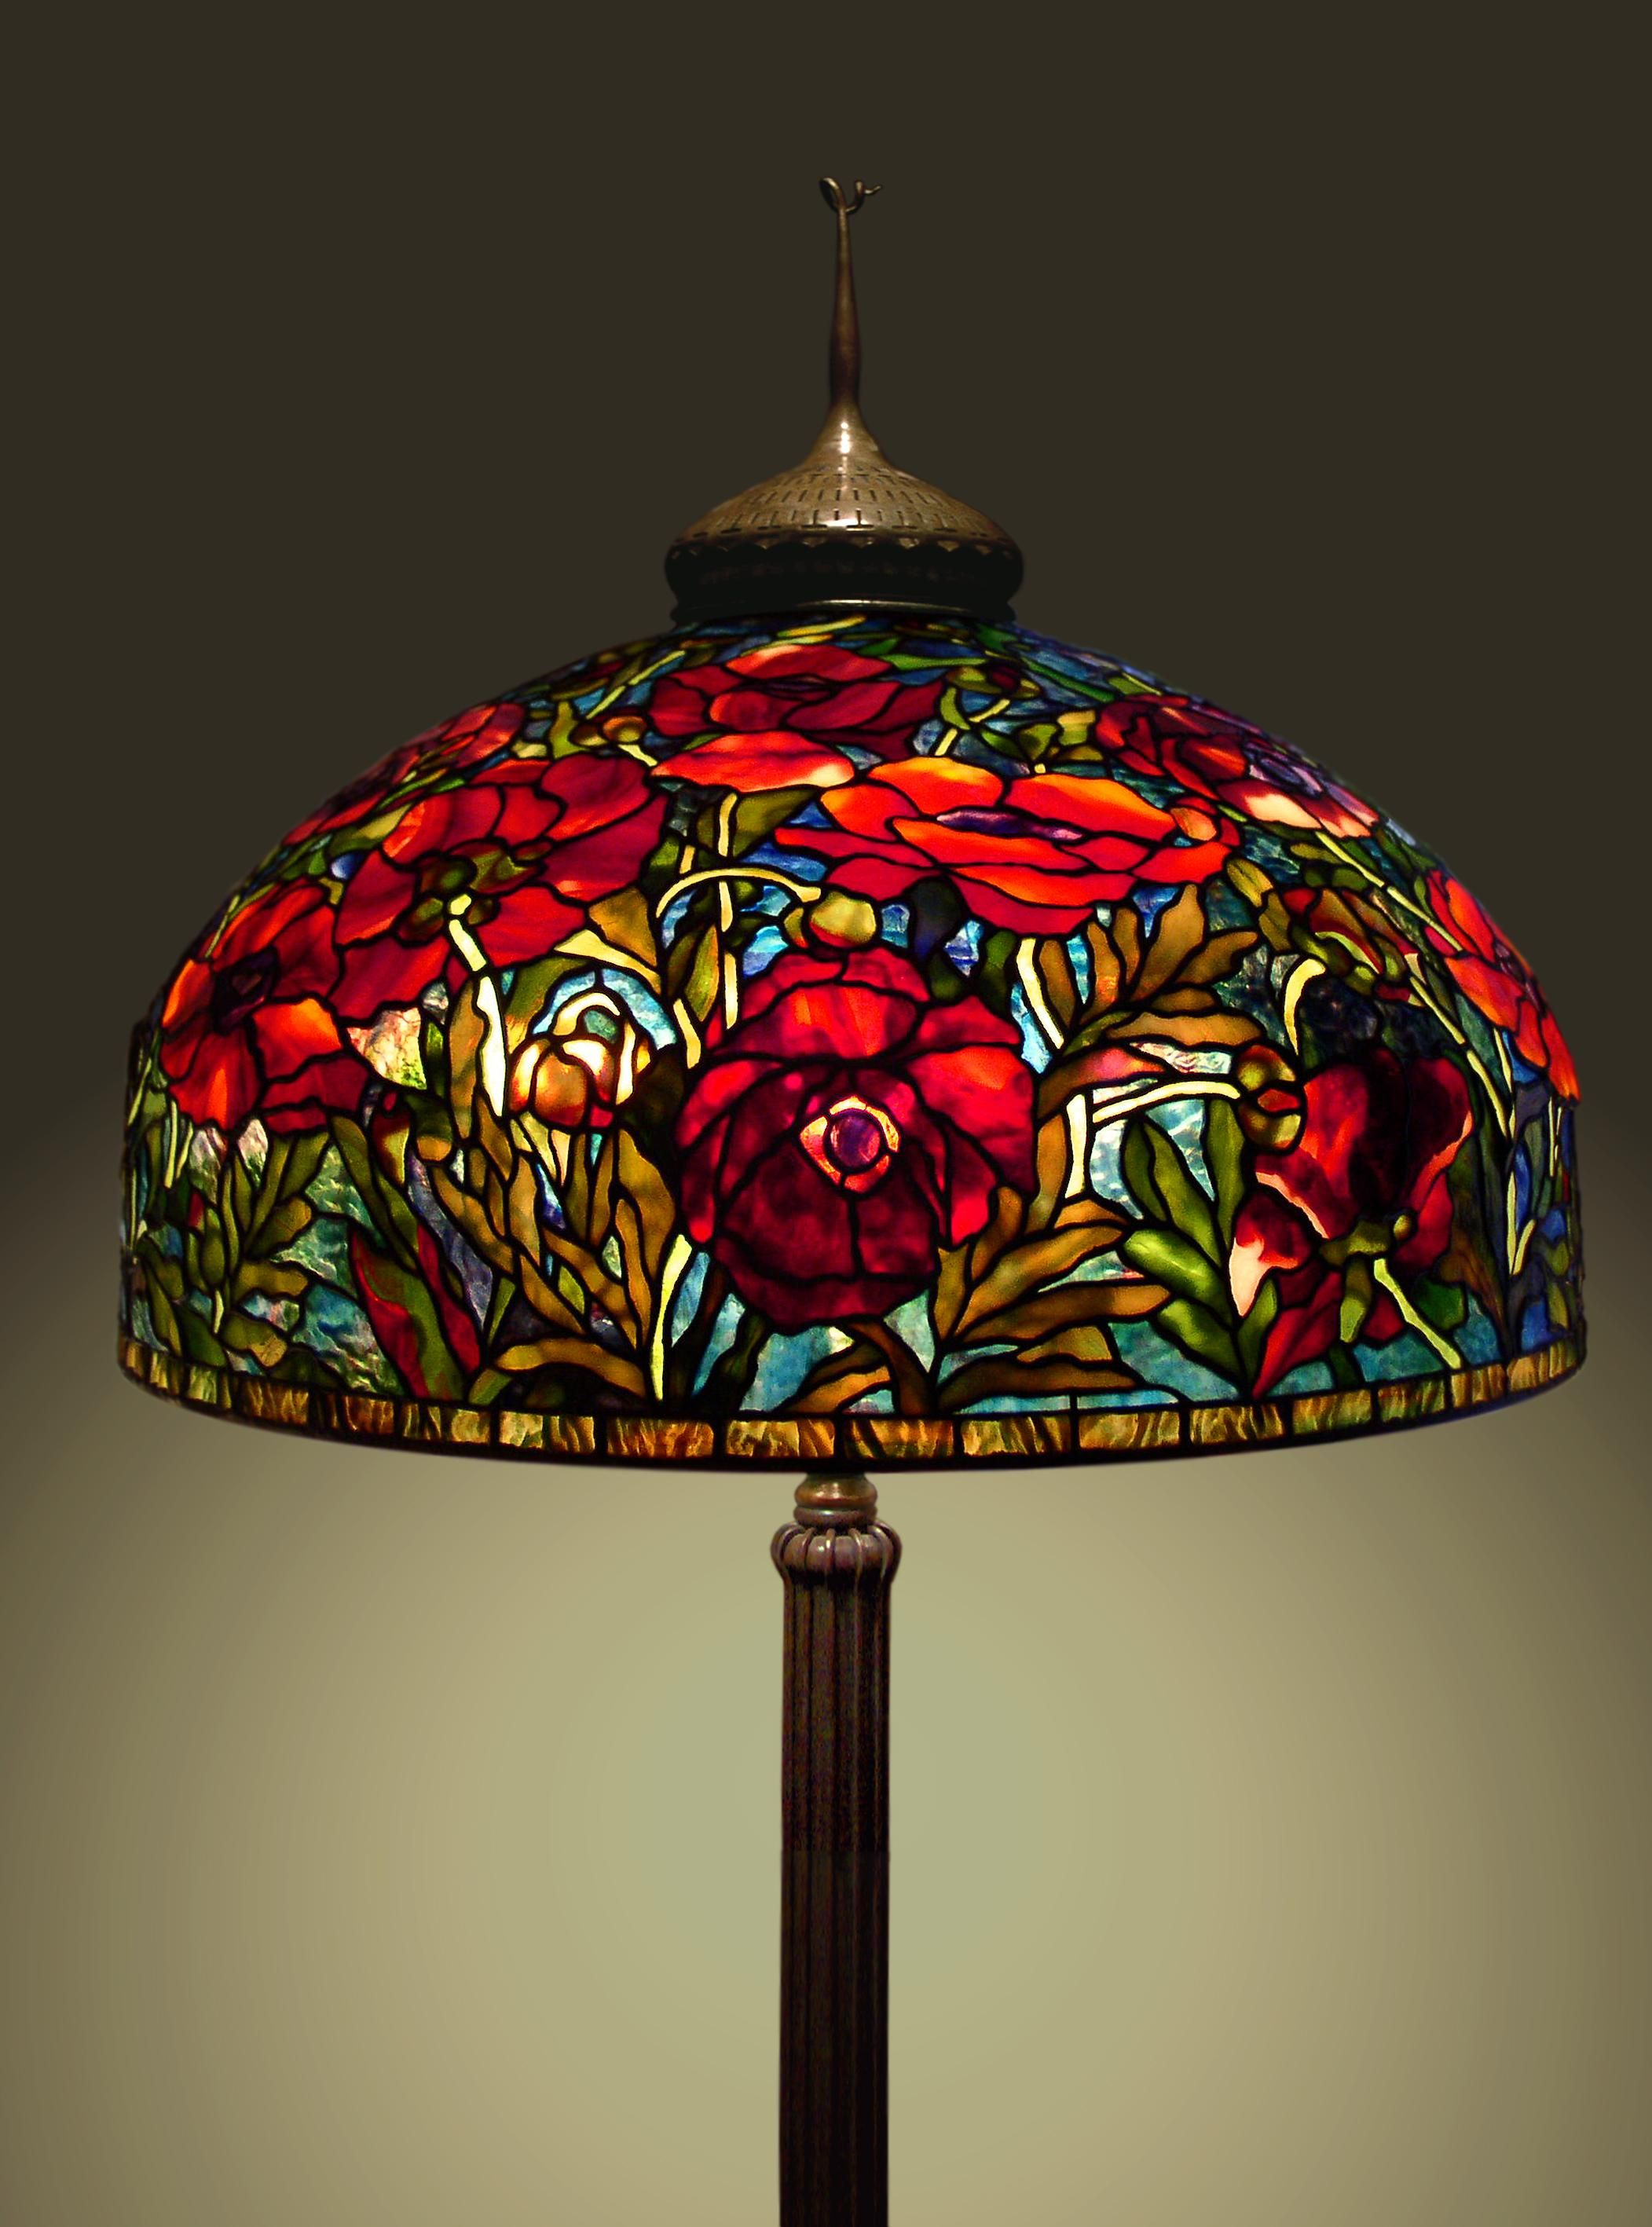 26 Oriental Poppy Delphi Artist Gallery Stained Glass Lamps Tiffany Lamps Glass Lamp